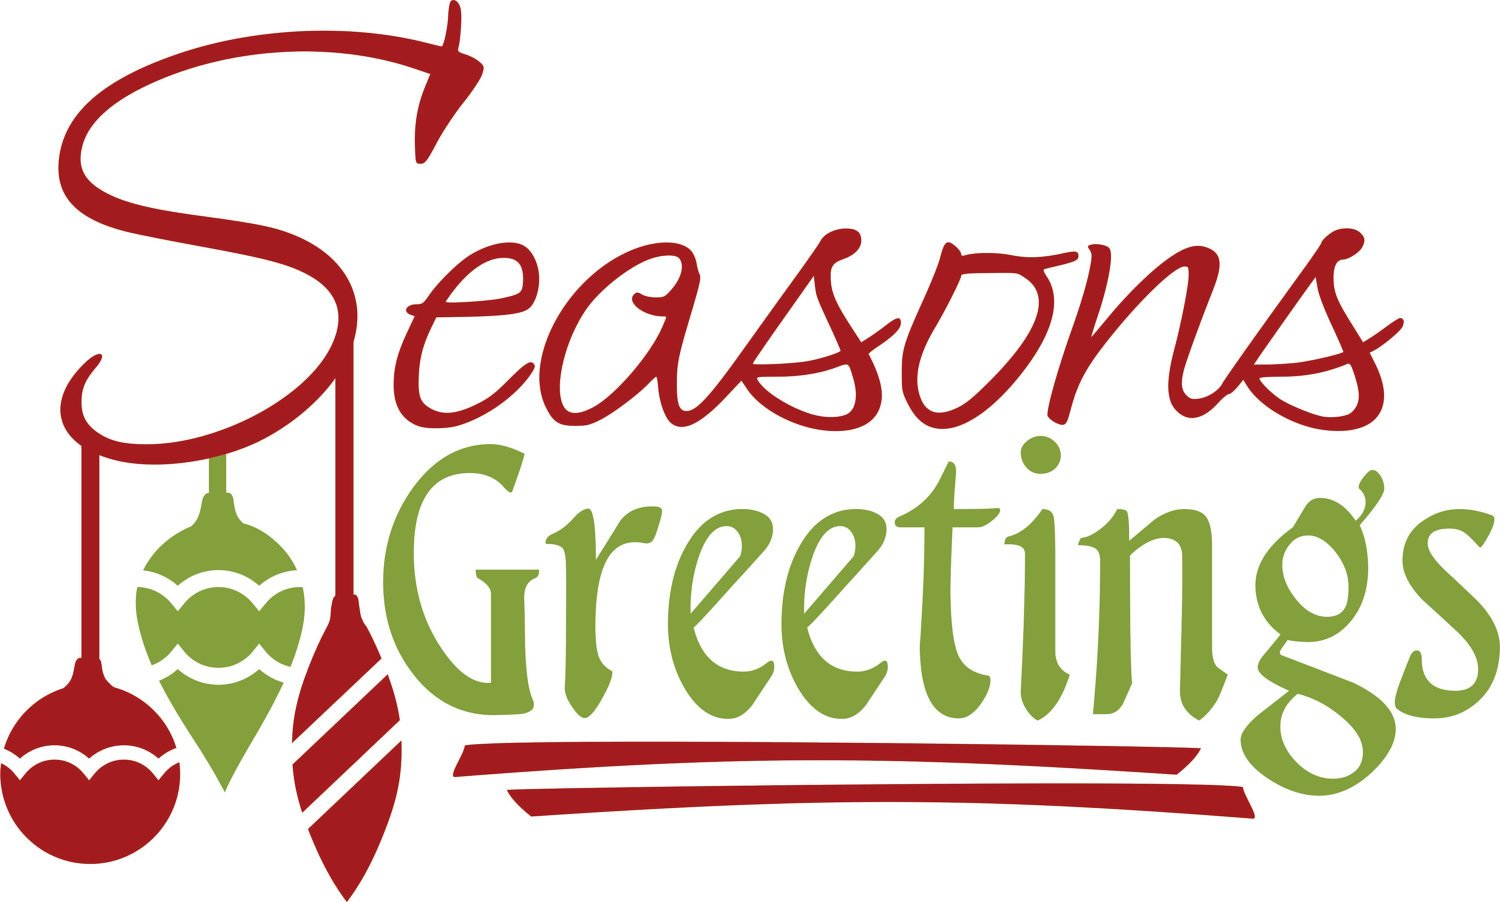 Free seasons greetings clipart images clip royalty free download Seasons greetings clipart free 1 » Clipart Portal clip royalty free download